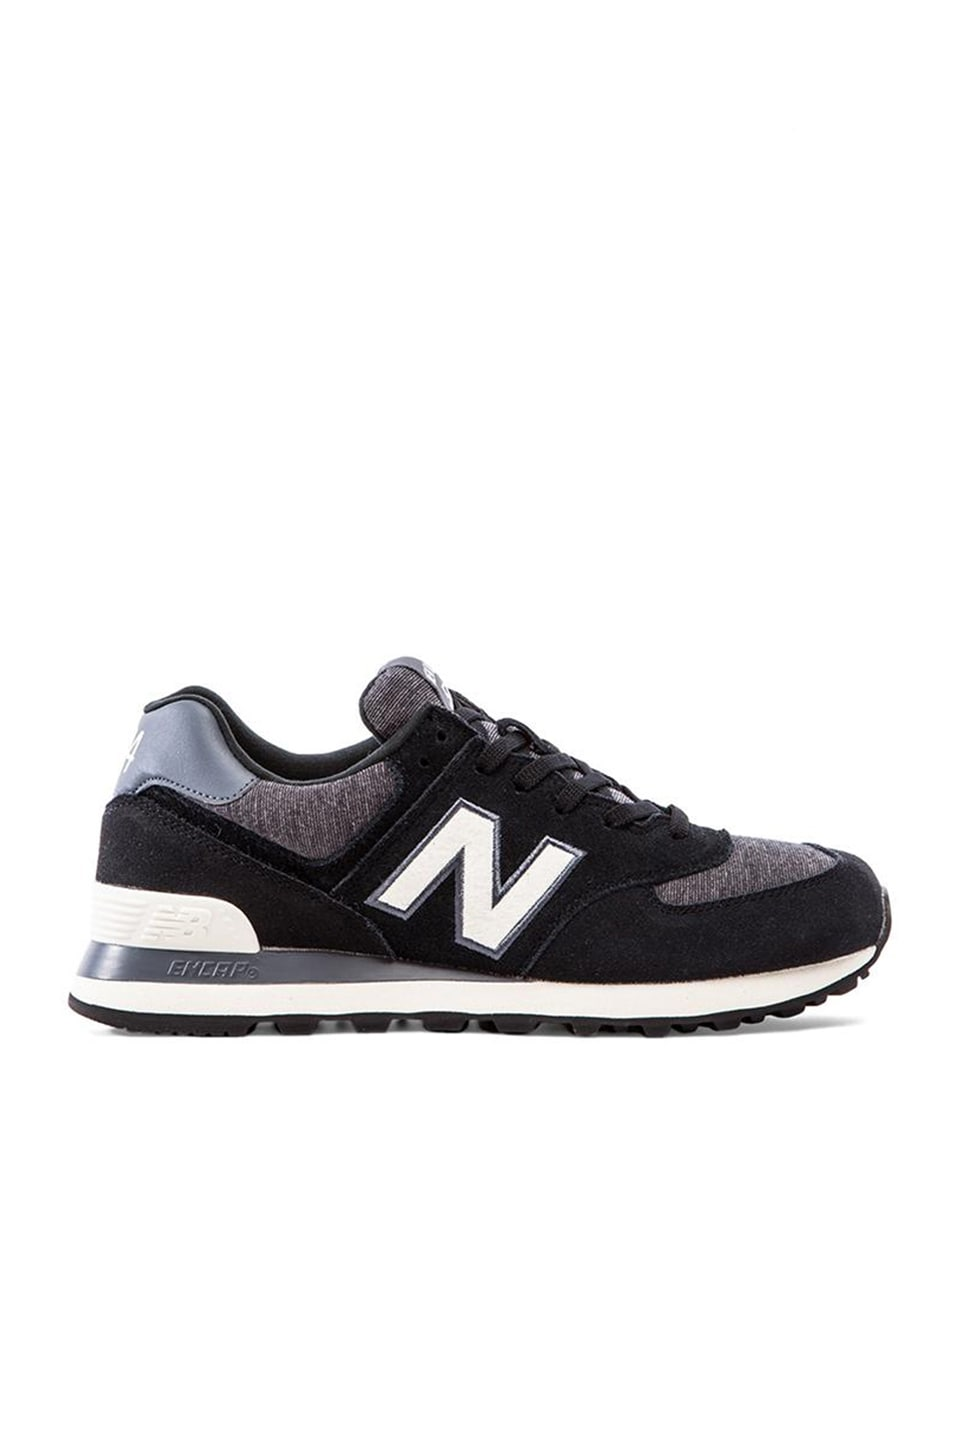 New Balance ML574 in Black/White